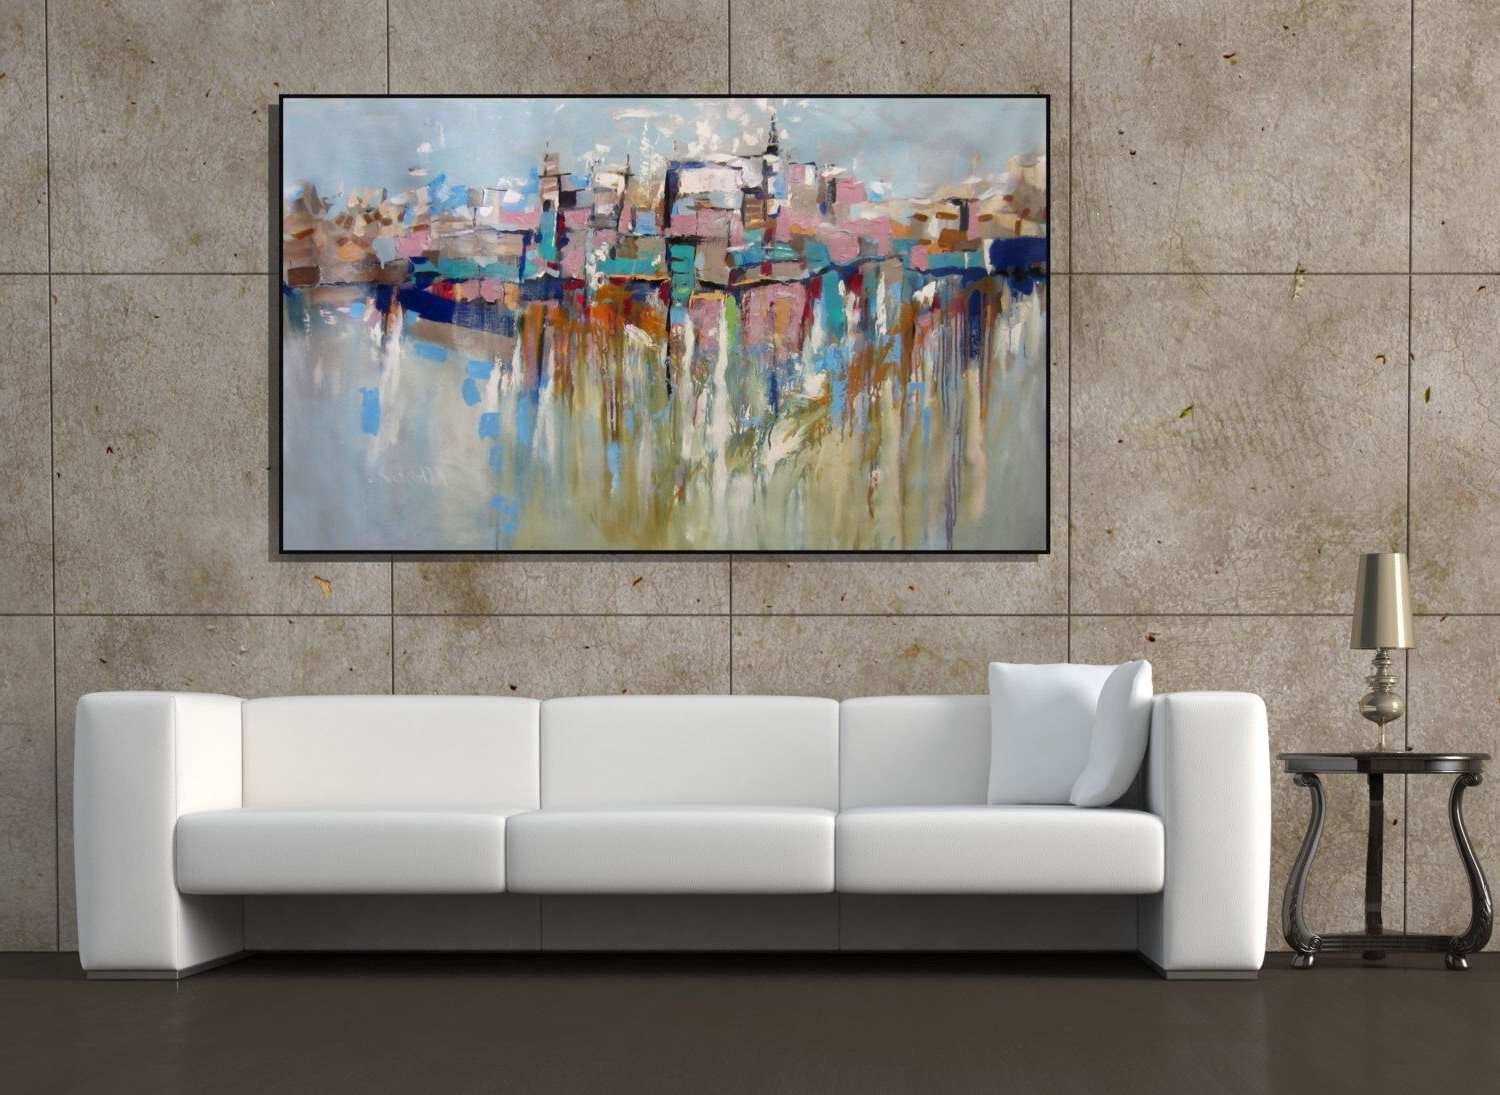 Wall Art Extra Large Painting Cityscape Abstract Painting Textured Pertaining To Recent Large Contemporary Wall Art (View 11 of 15)